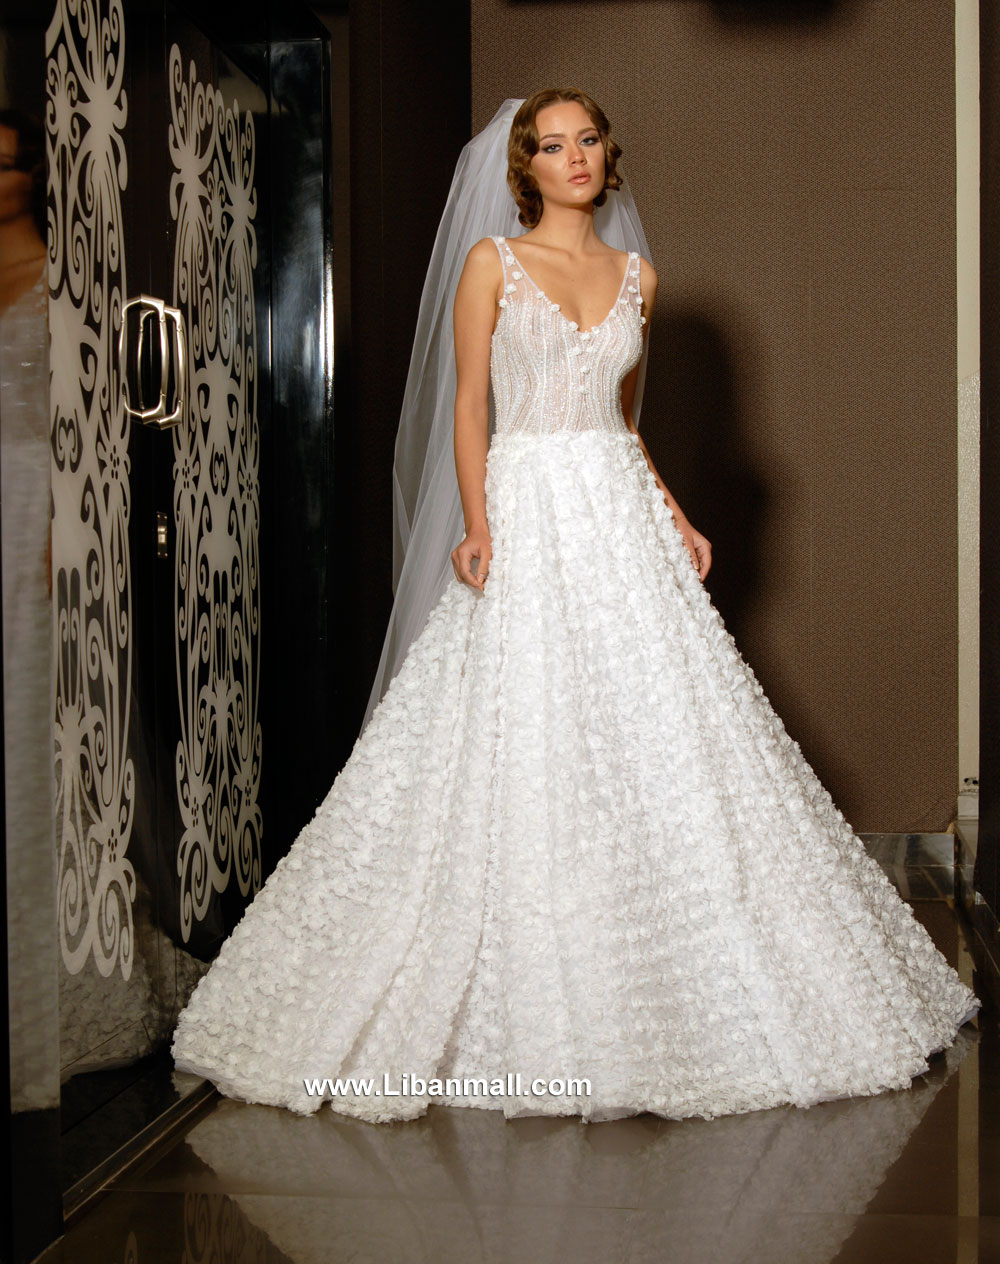 Ehsan Chamoun Haute Couture,Fashion Designers in Lebanon, Wedding Dresses in Lebanon, Lebanon Bridal dress